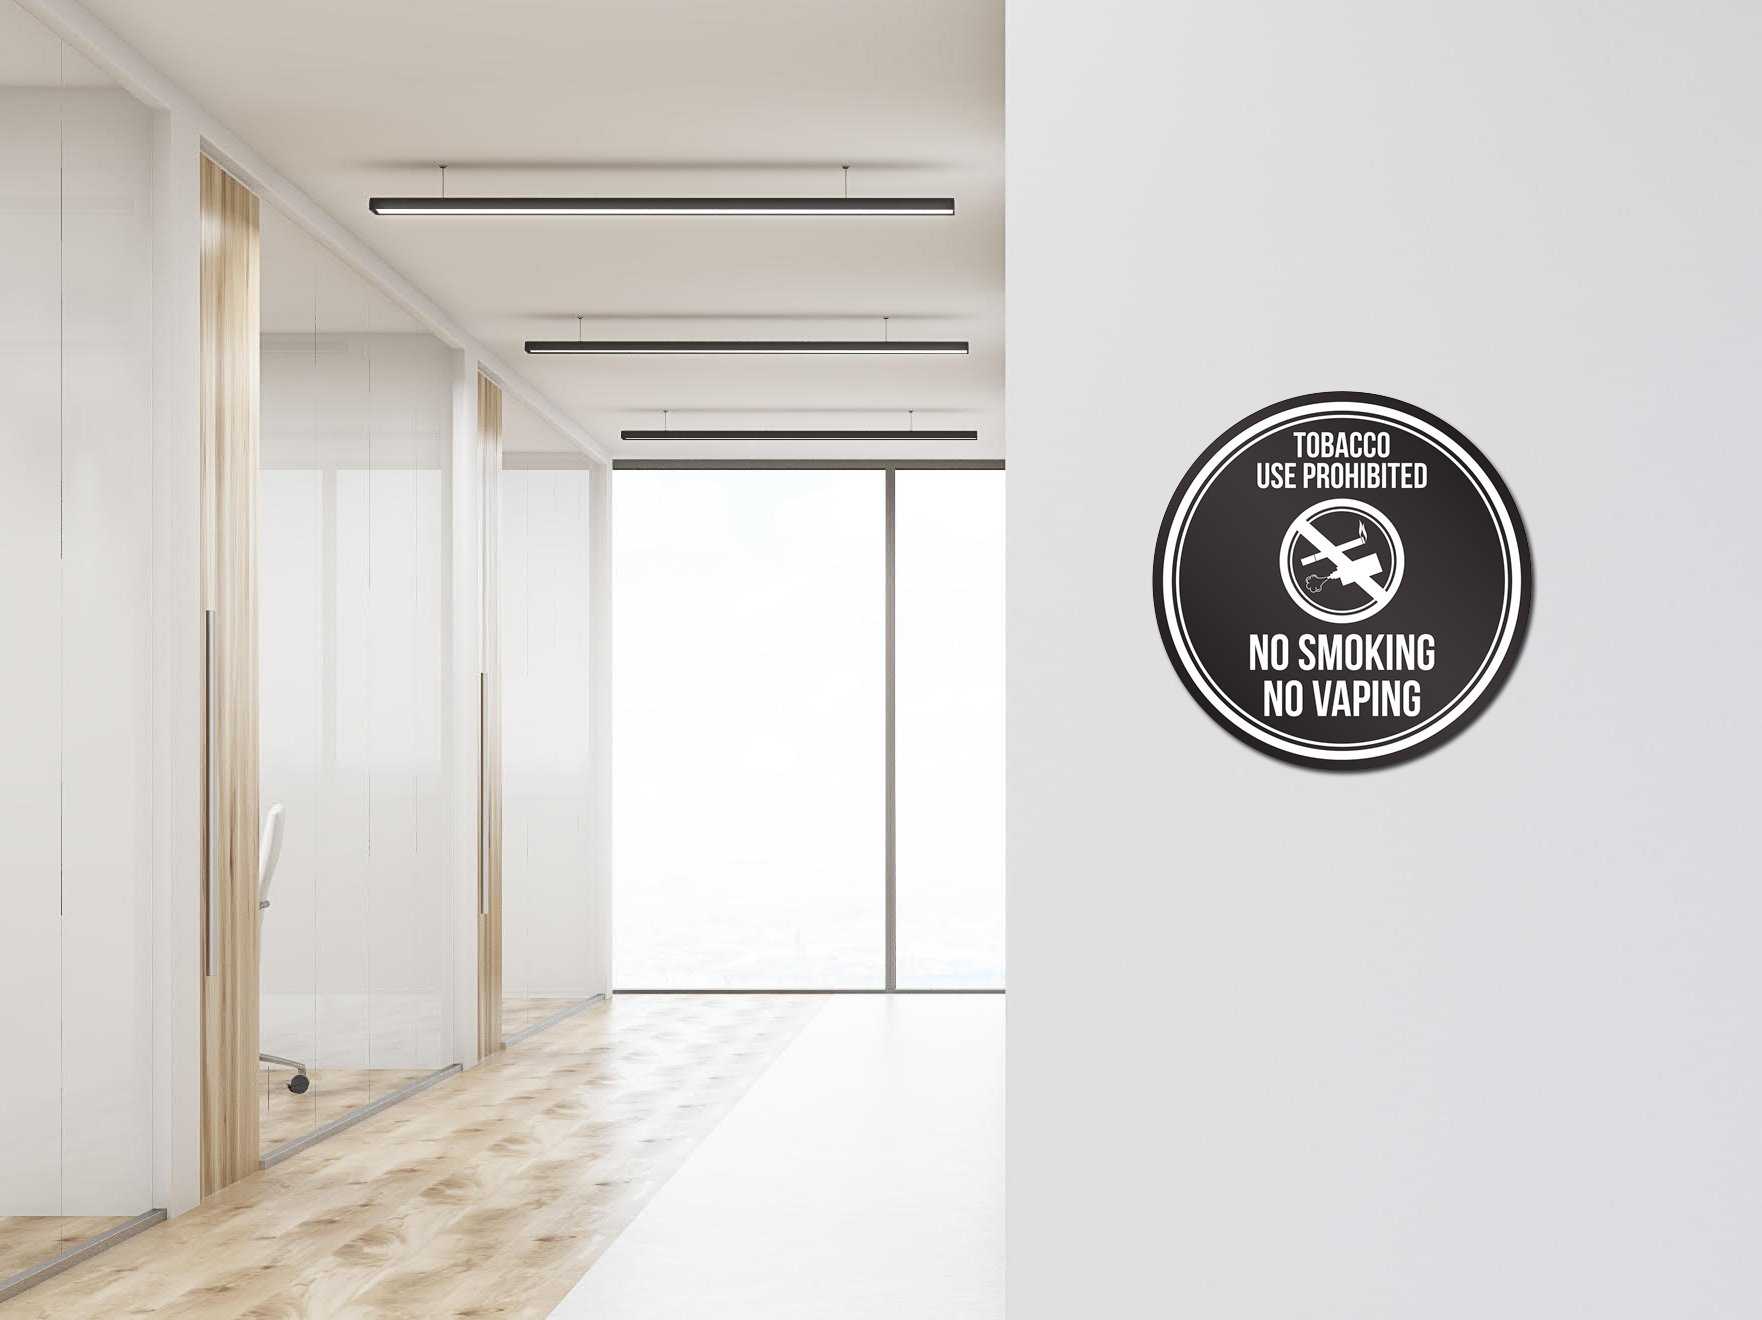 iCandy Products Inc Tobacco Use Prohibited No Smoking No Vaping Black and White Safety Warning Round Sign - 12 Inch, Plastic by iCandy Products Inc (Image #2)